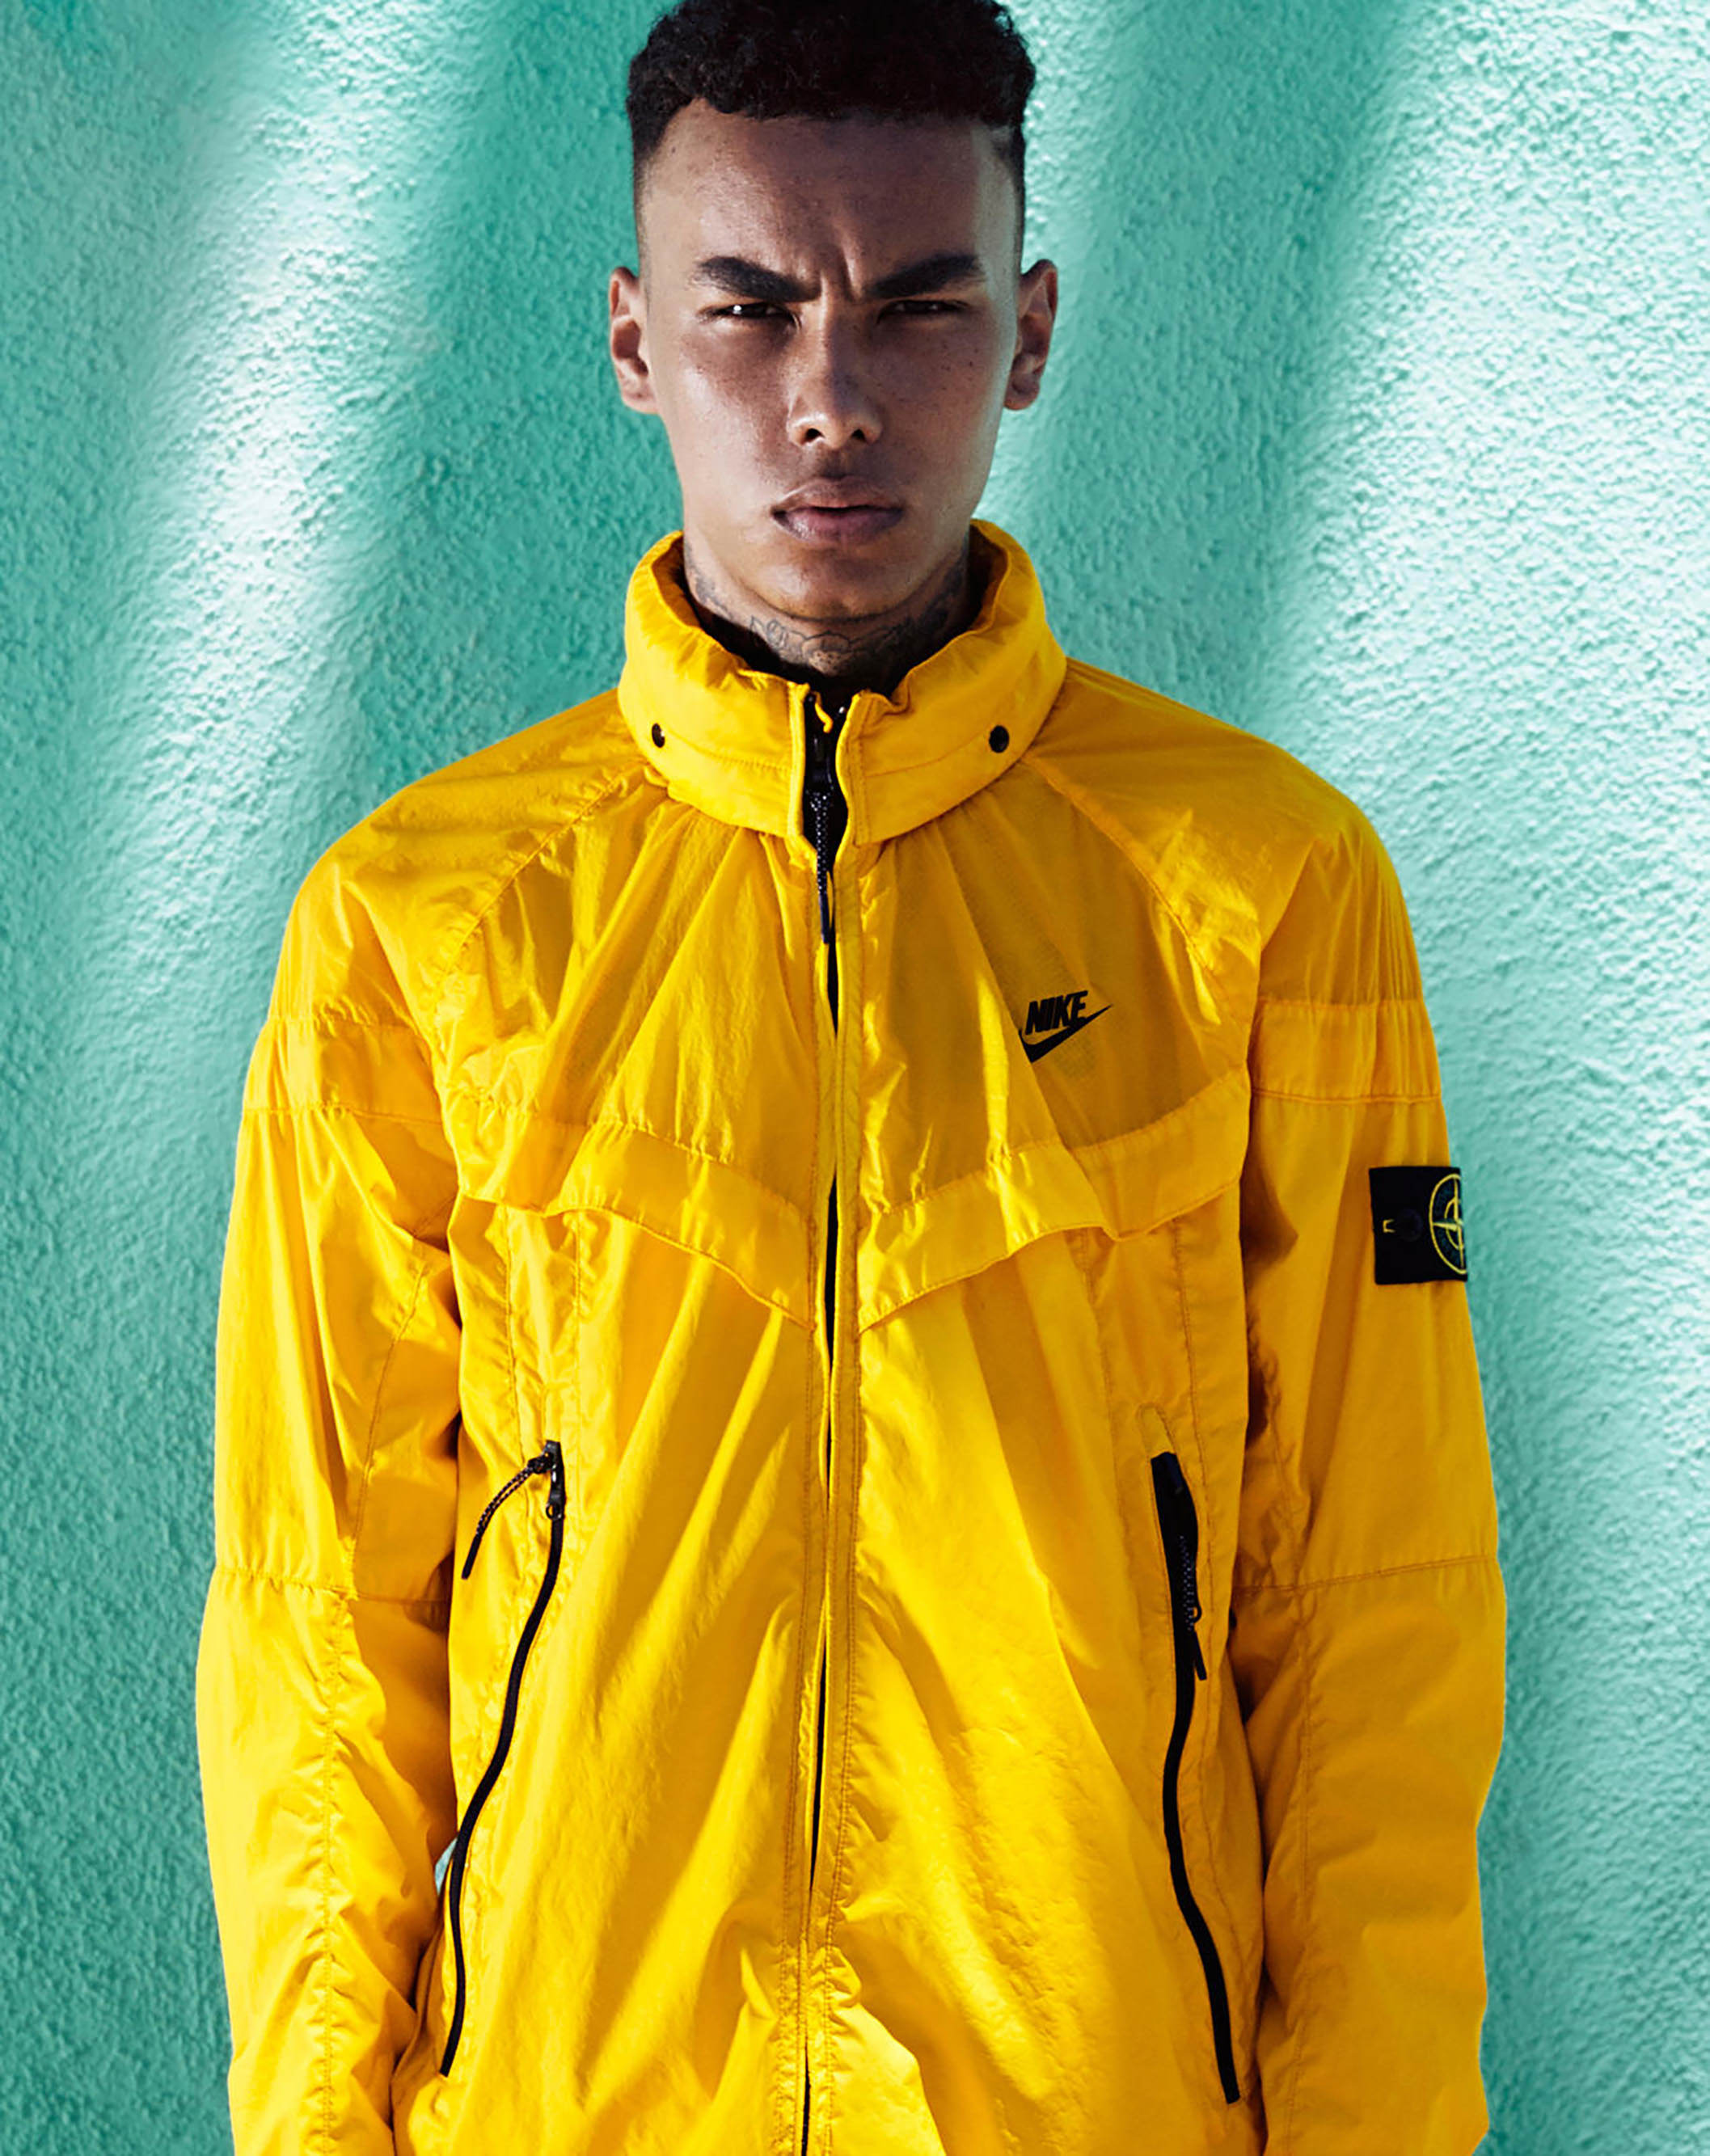 57cfcc6ad418a47c56418723_NikeLab-x-Stone-Island-Windrunner_Yellow_native_1600